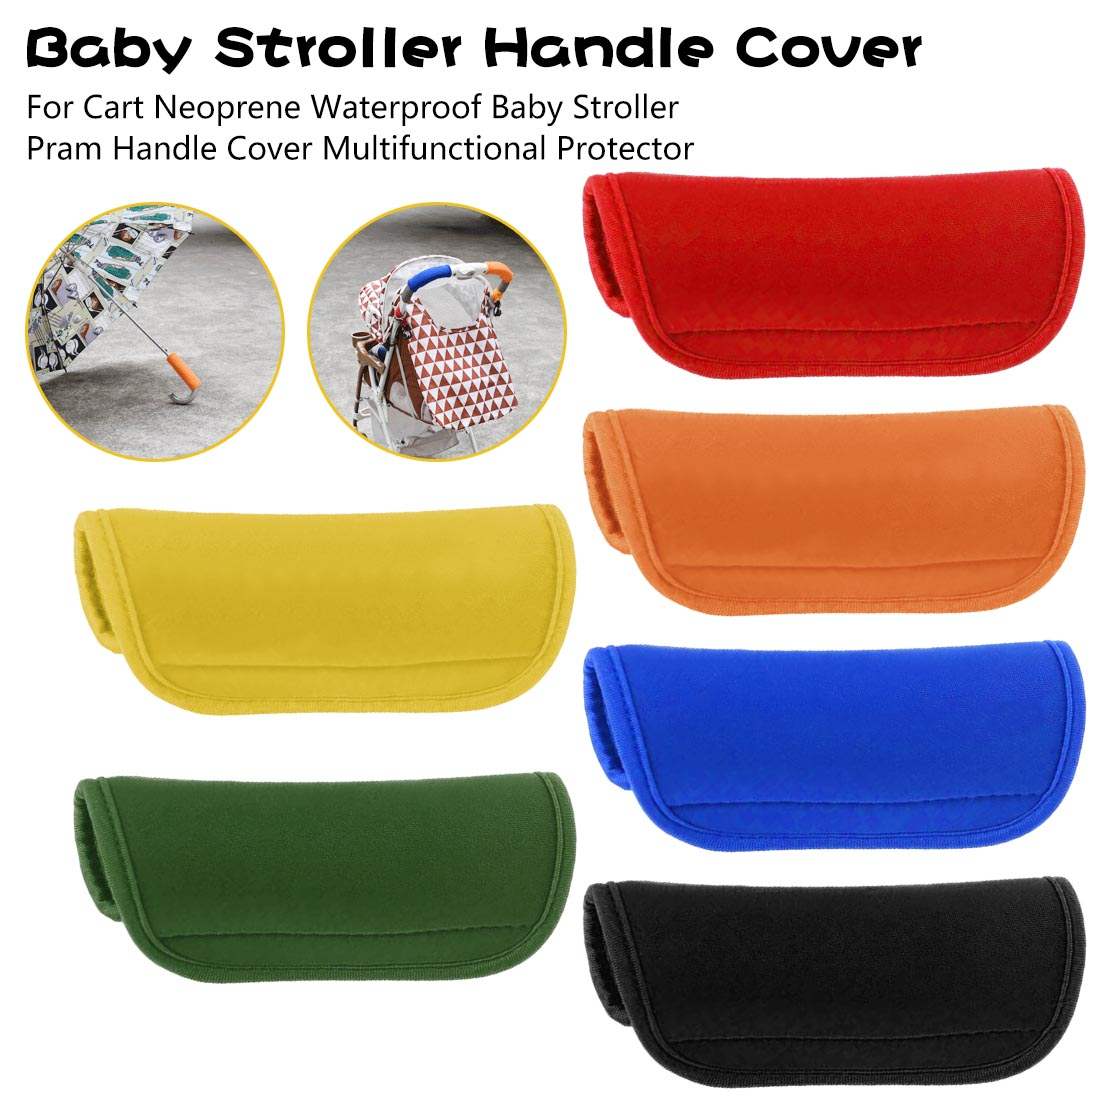 For Cart Neoprene Waterproof Baby Stroller Pram Handle Cover Multifunctional Protector Baby Stroller Handle Cover